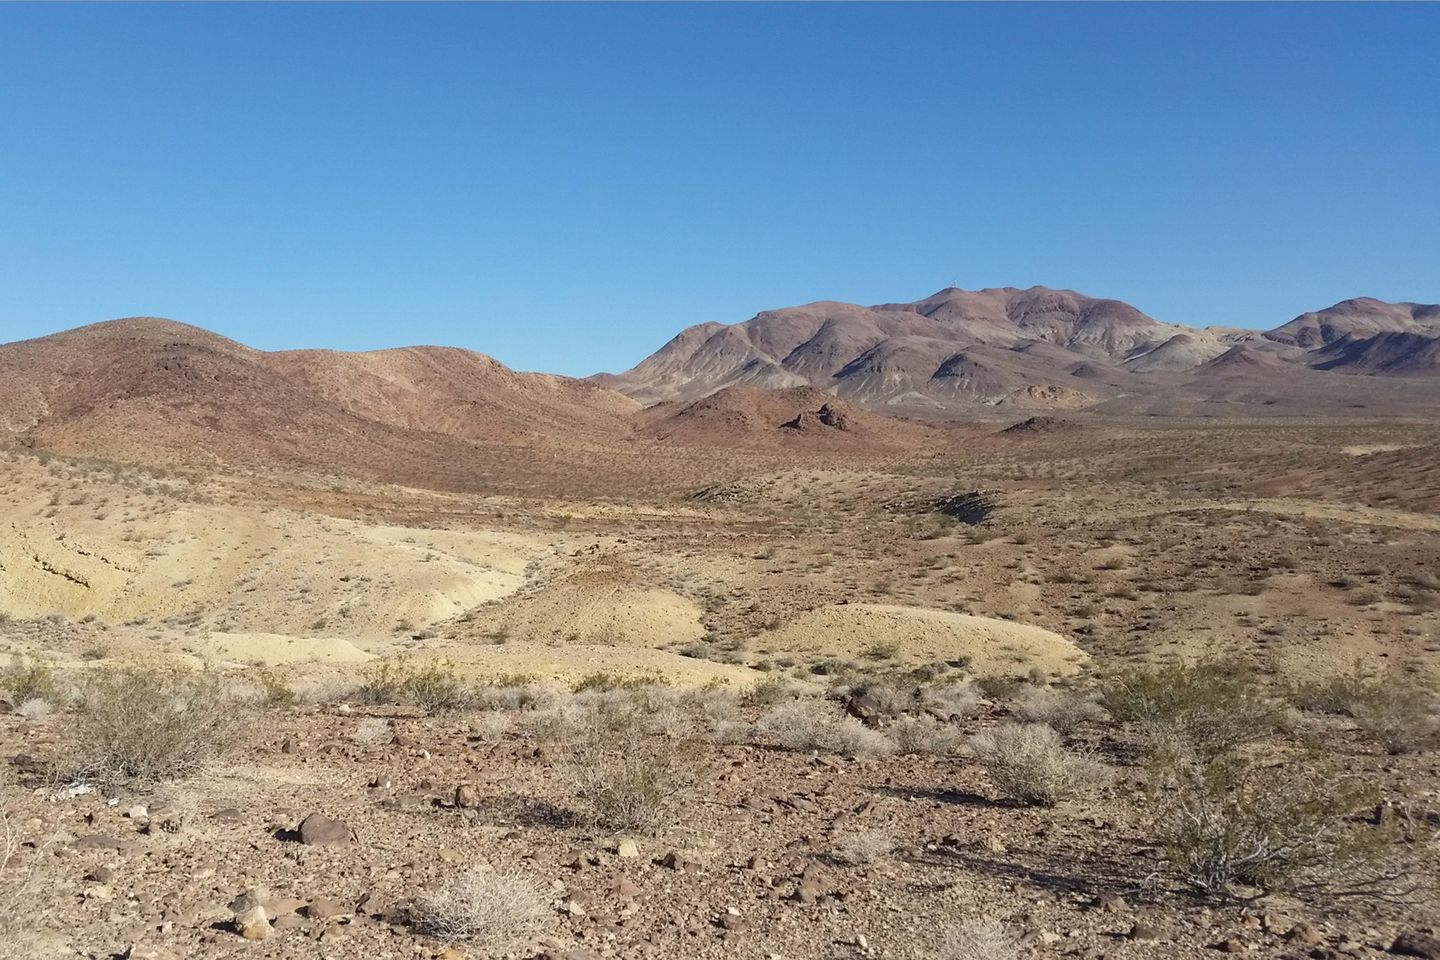 Mule Canyon - Waypoint 5: Shortcut to Tin Can Alley